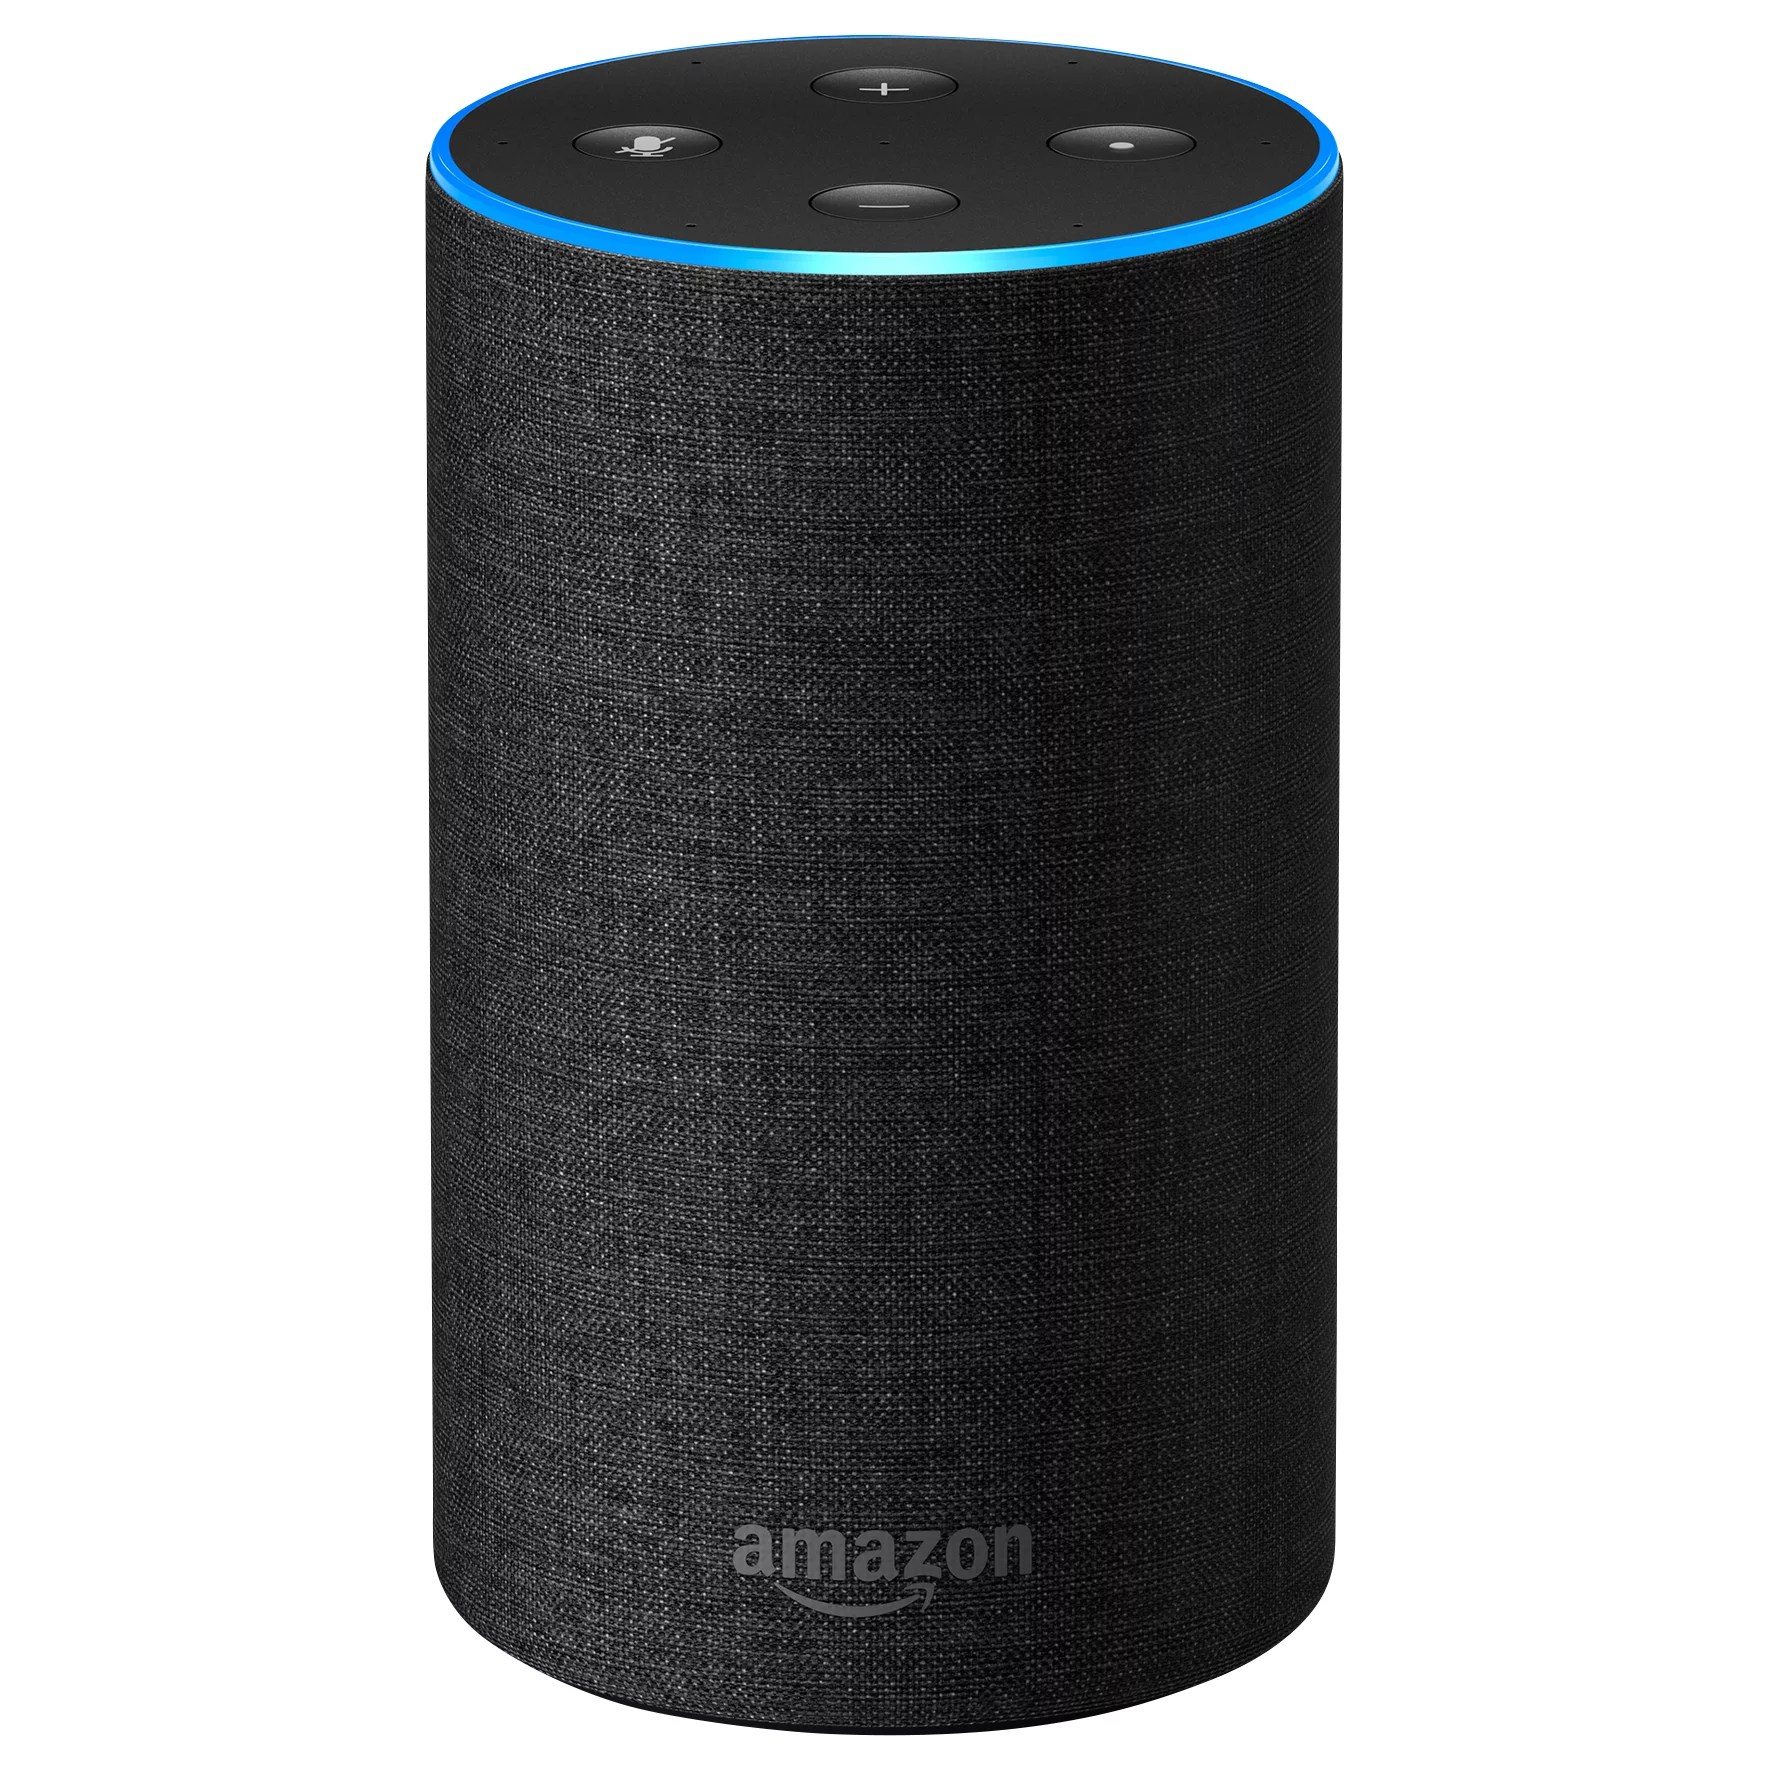 Alexa Audio Amazon Echo Smart Speaker With Alexa Voice Recognition